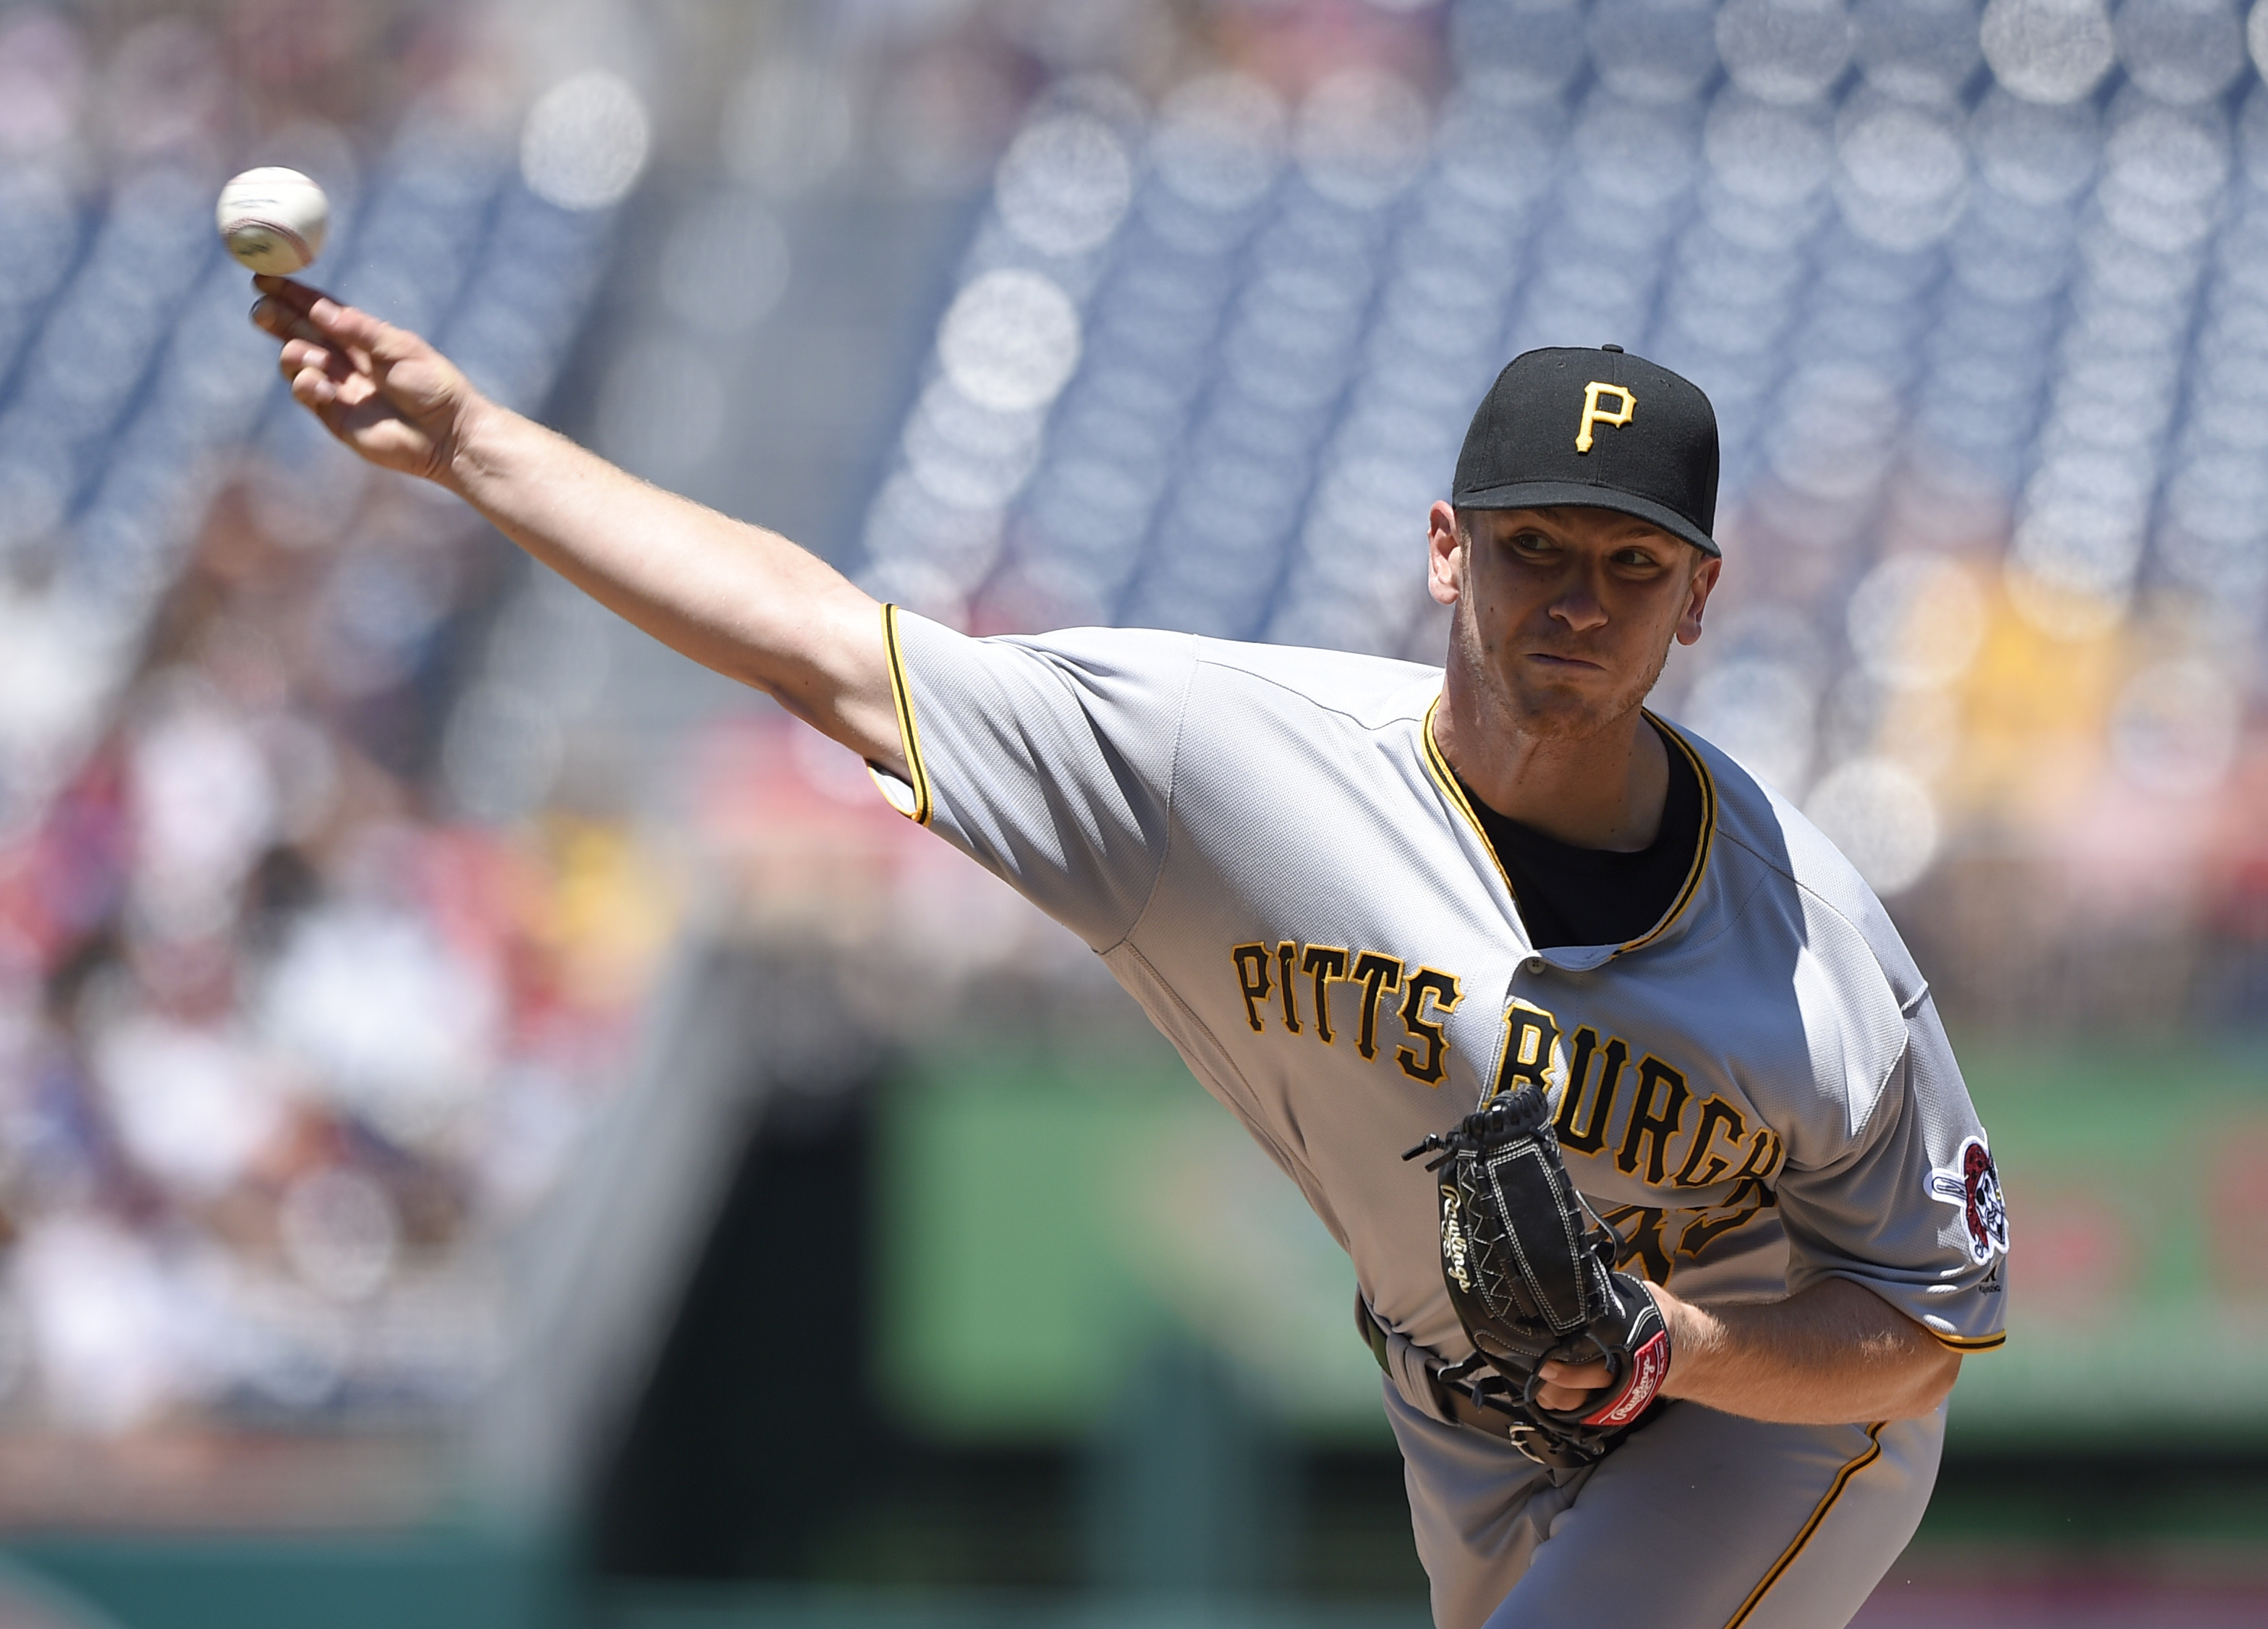 Pittsburgh Pirates starting pitcher Chad Kuhl delivers during the first inning of a baseball game against the Washington Nationals, Sunday, July 17, 2016, in Washington. (AP Photo/Nick Wass)